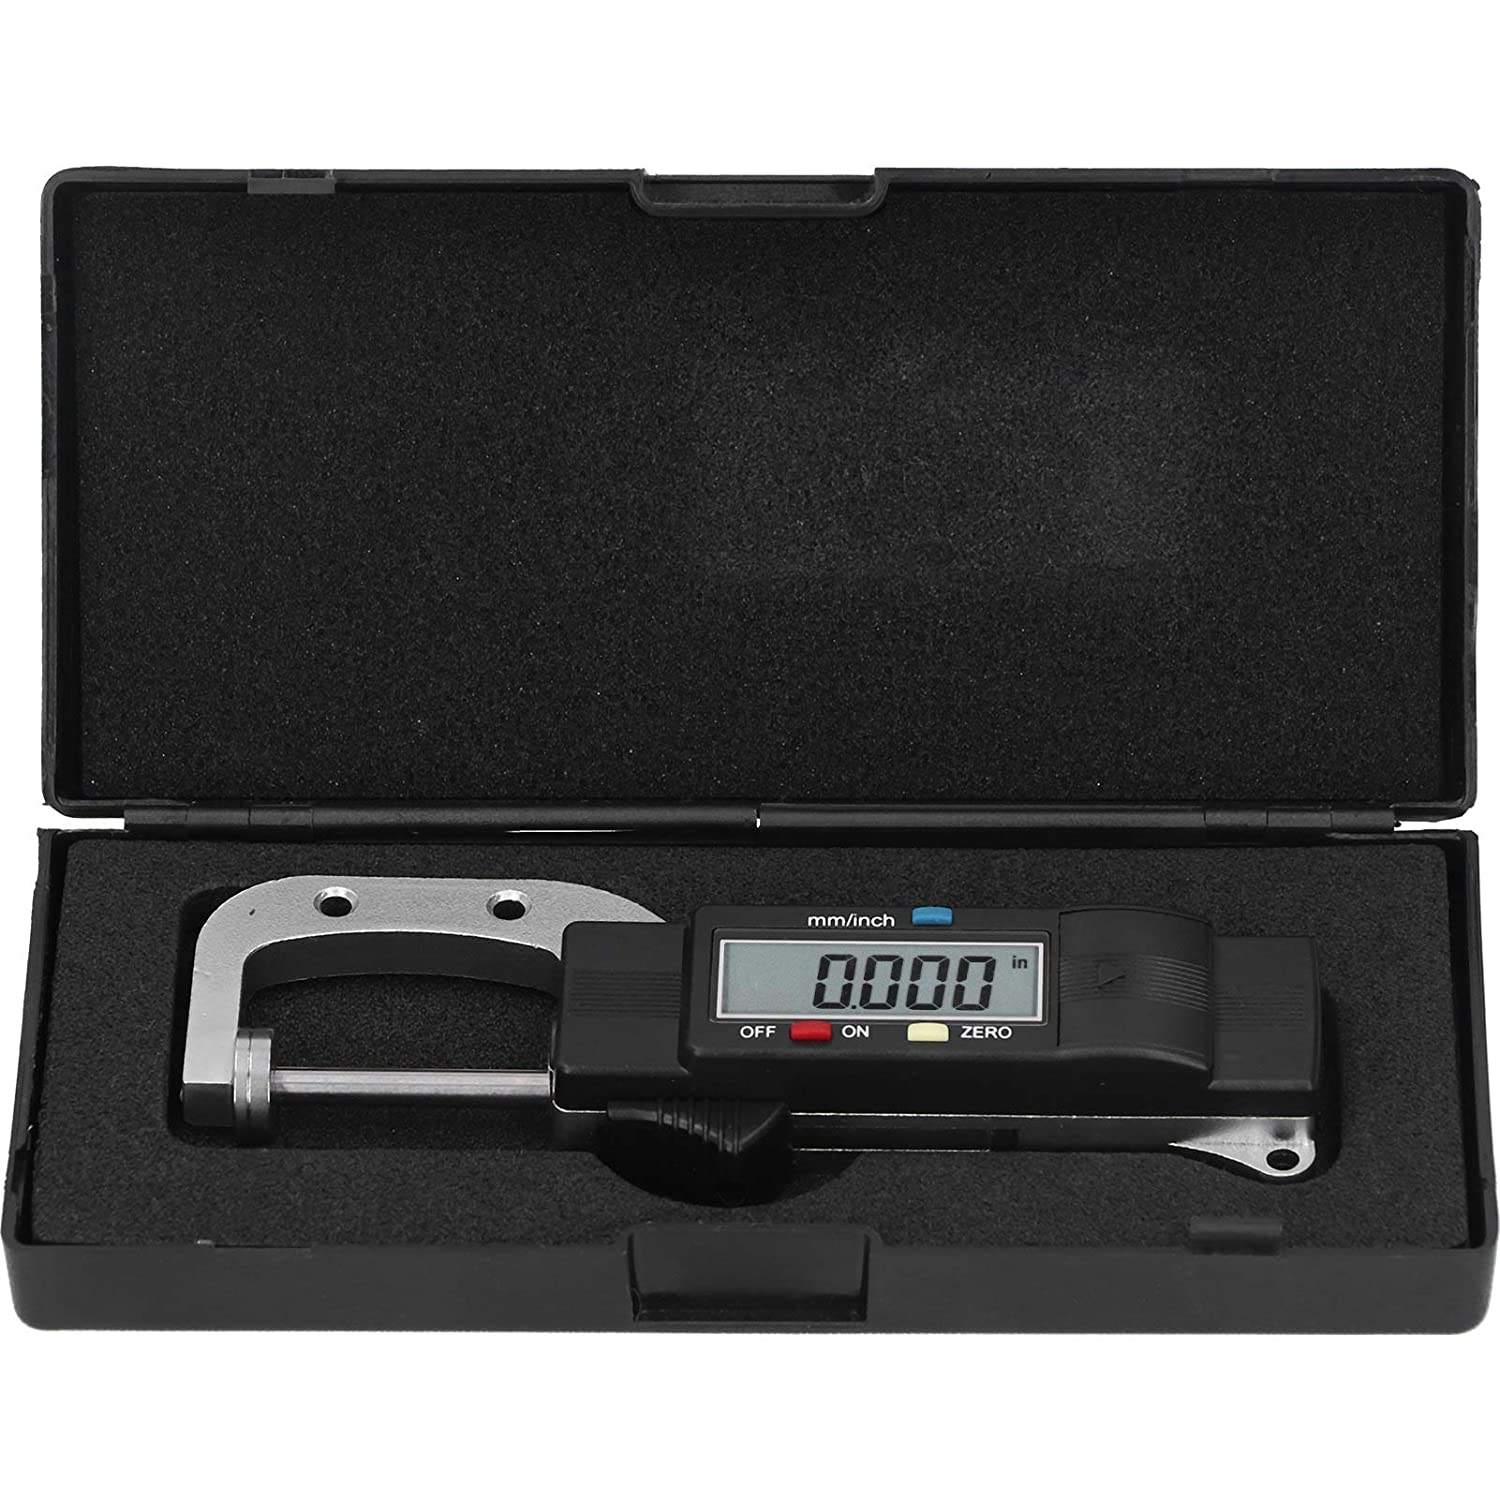 Albuquerque Mall Electronic Micrometer LCD Screen Detroit Mall Gauge Display Ruler